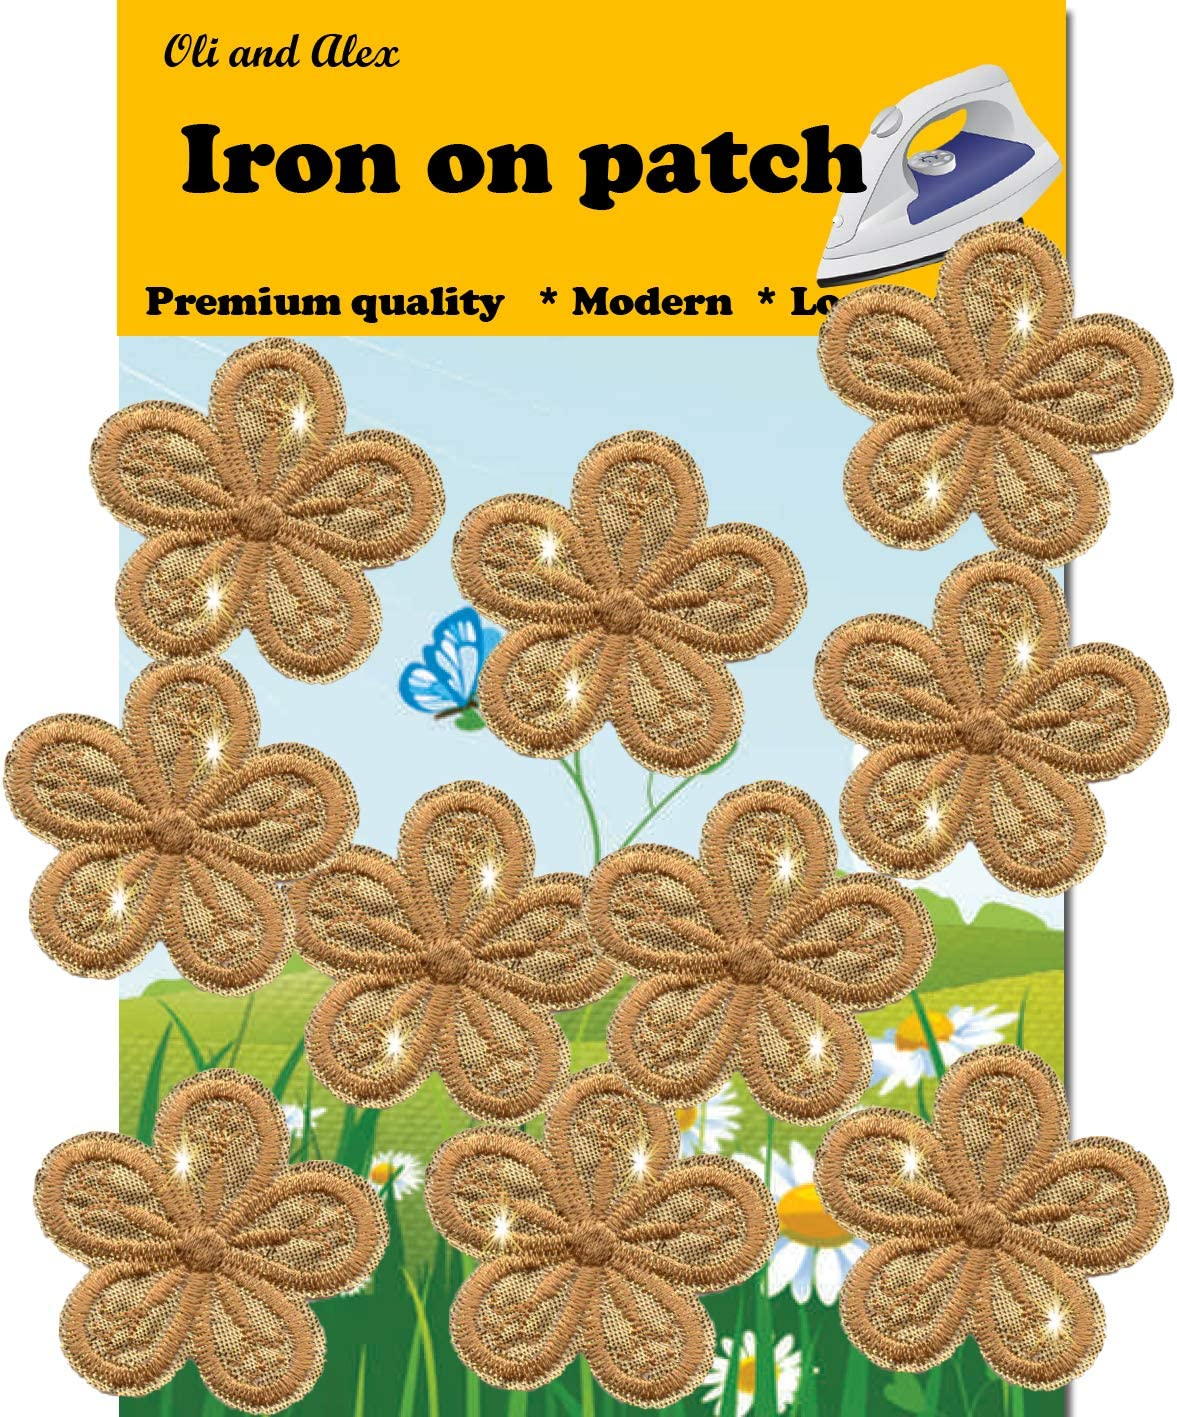 Over item handling A-12 Gold Flower Iron On Patch 10 Decorativ Brand new Pieces Embroidered